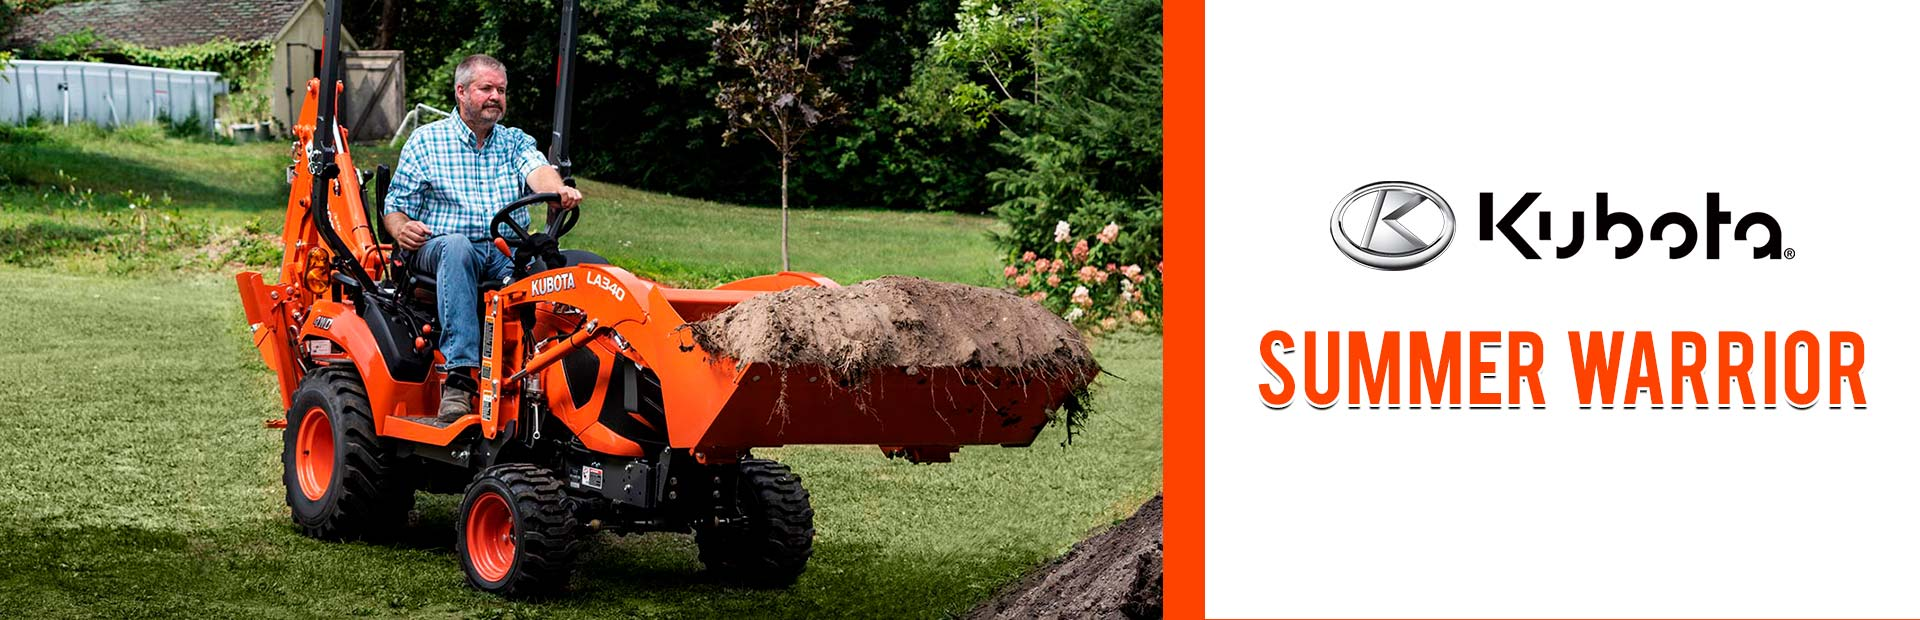 Kubota: Summer Warrior